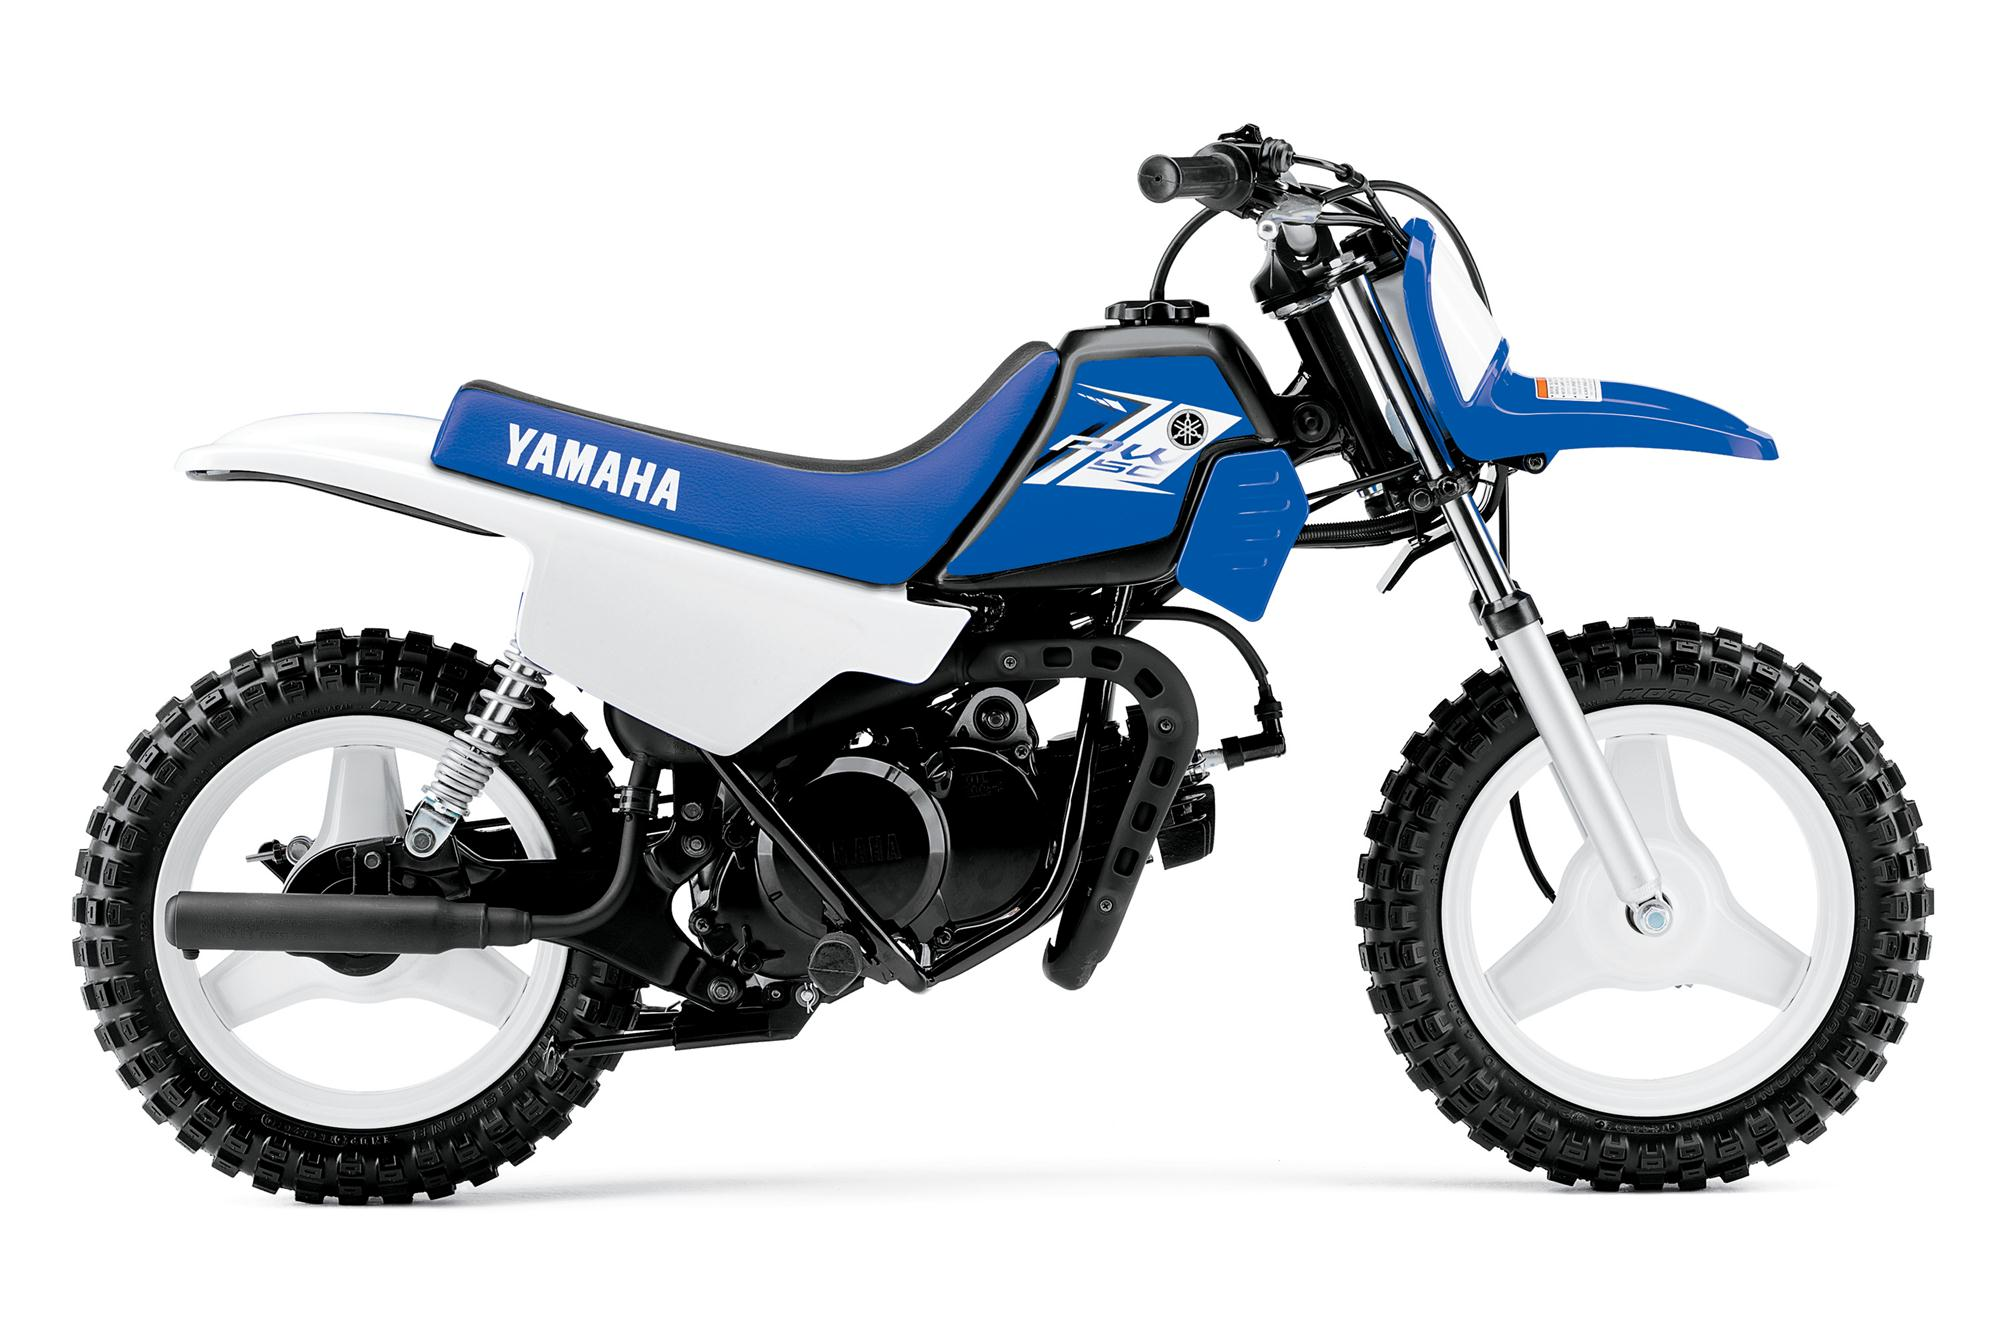 2013 yamaha pw50 the small bike for young champs. Black Bedroom Furniture Sets. Home Design Ideas